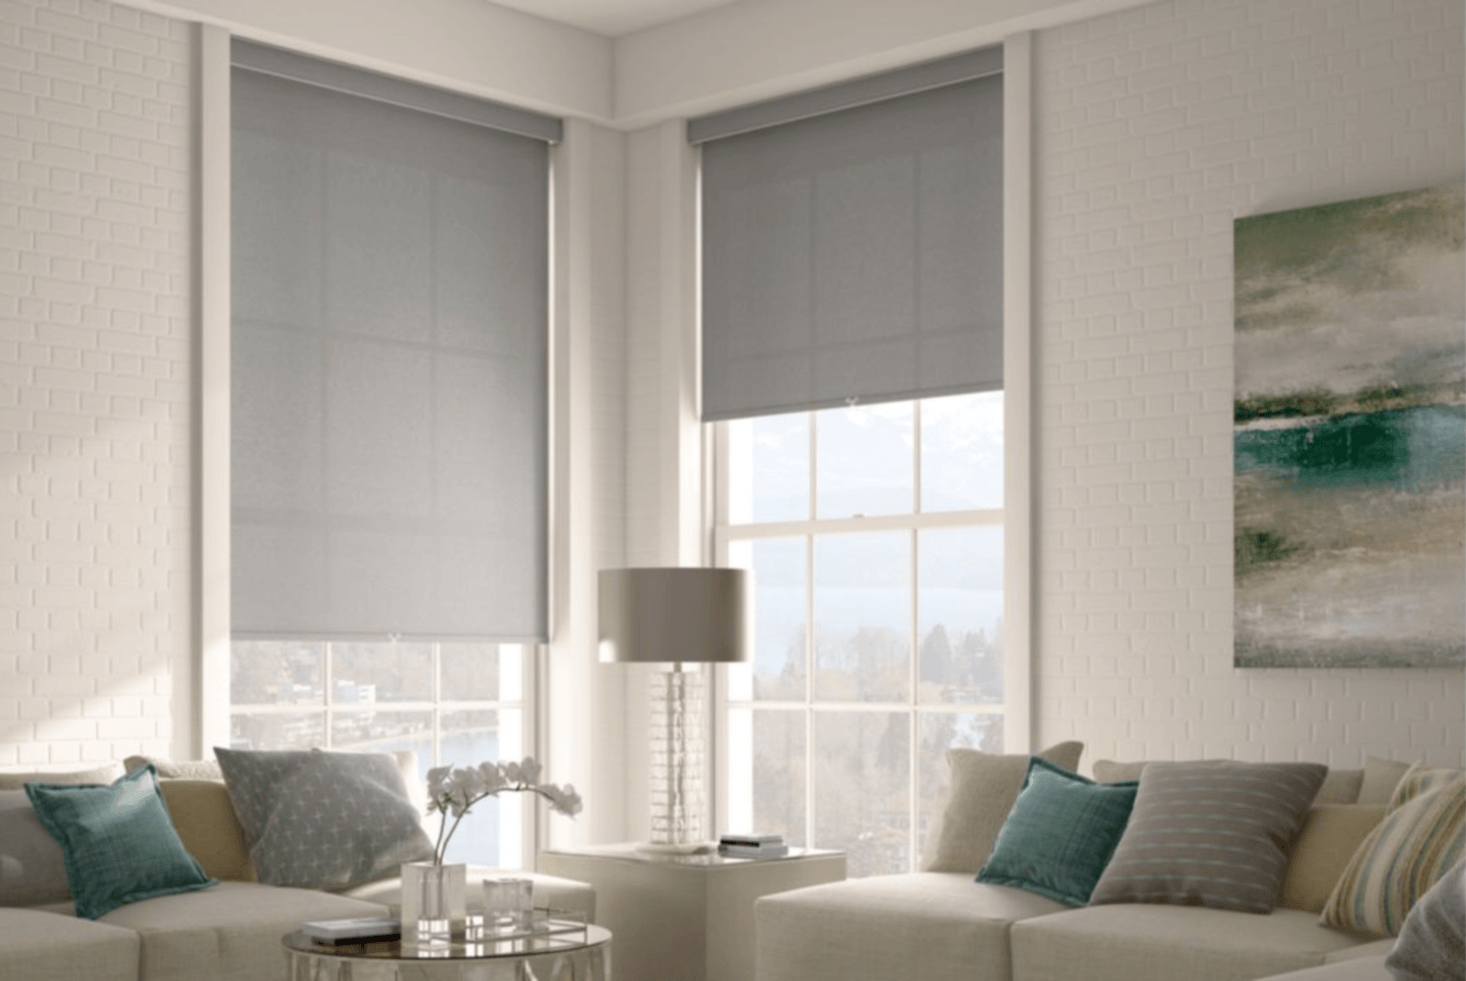 Levolor offers a range of light filtering shades including their Solar Shades starting at $86.9